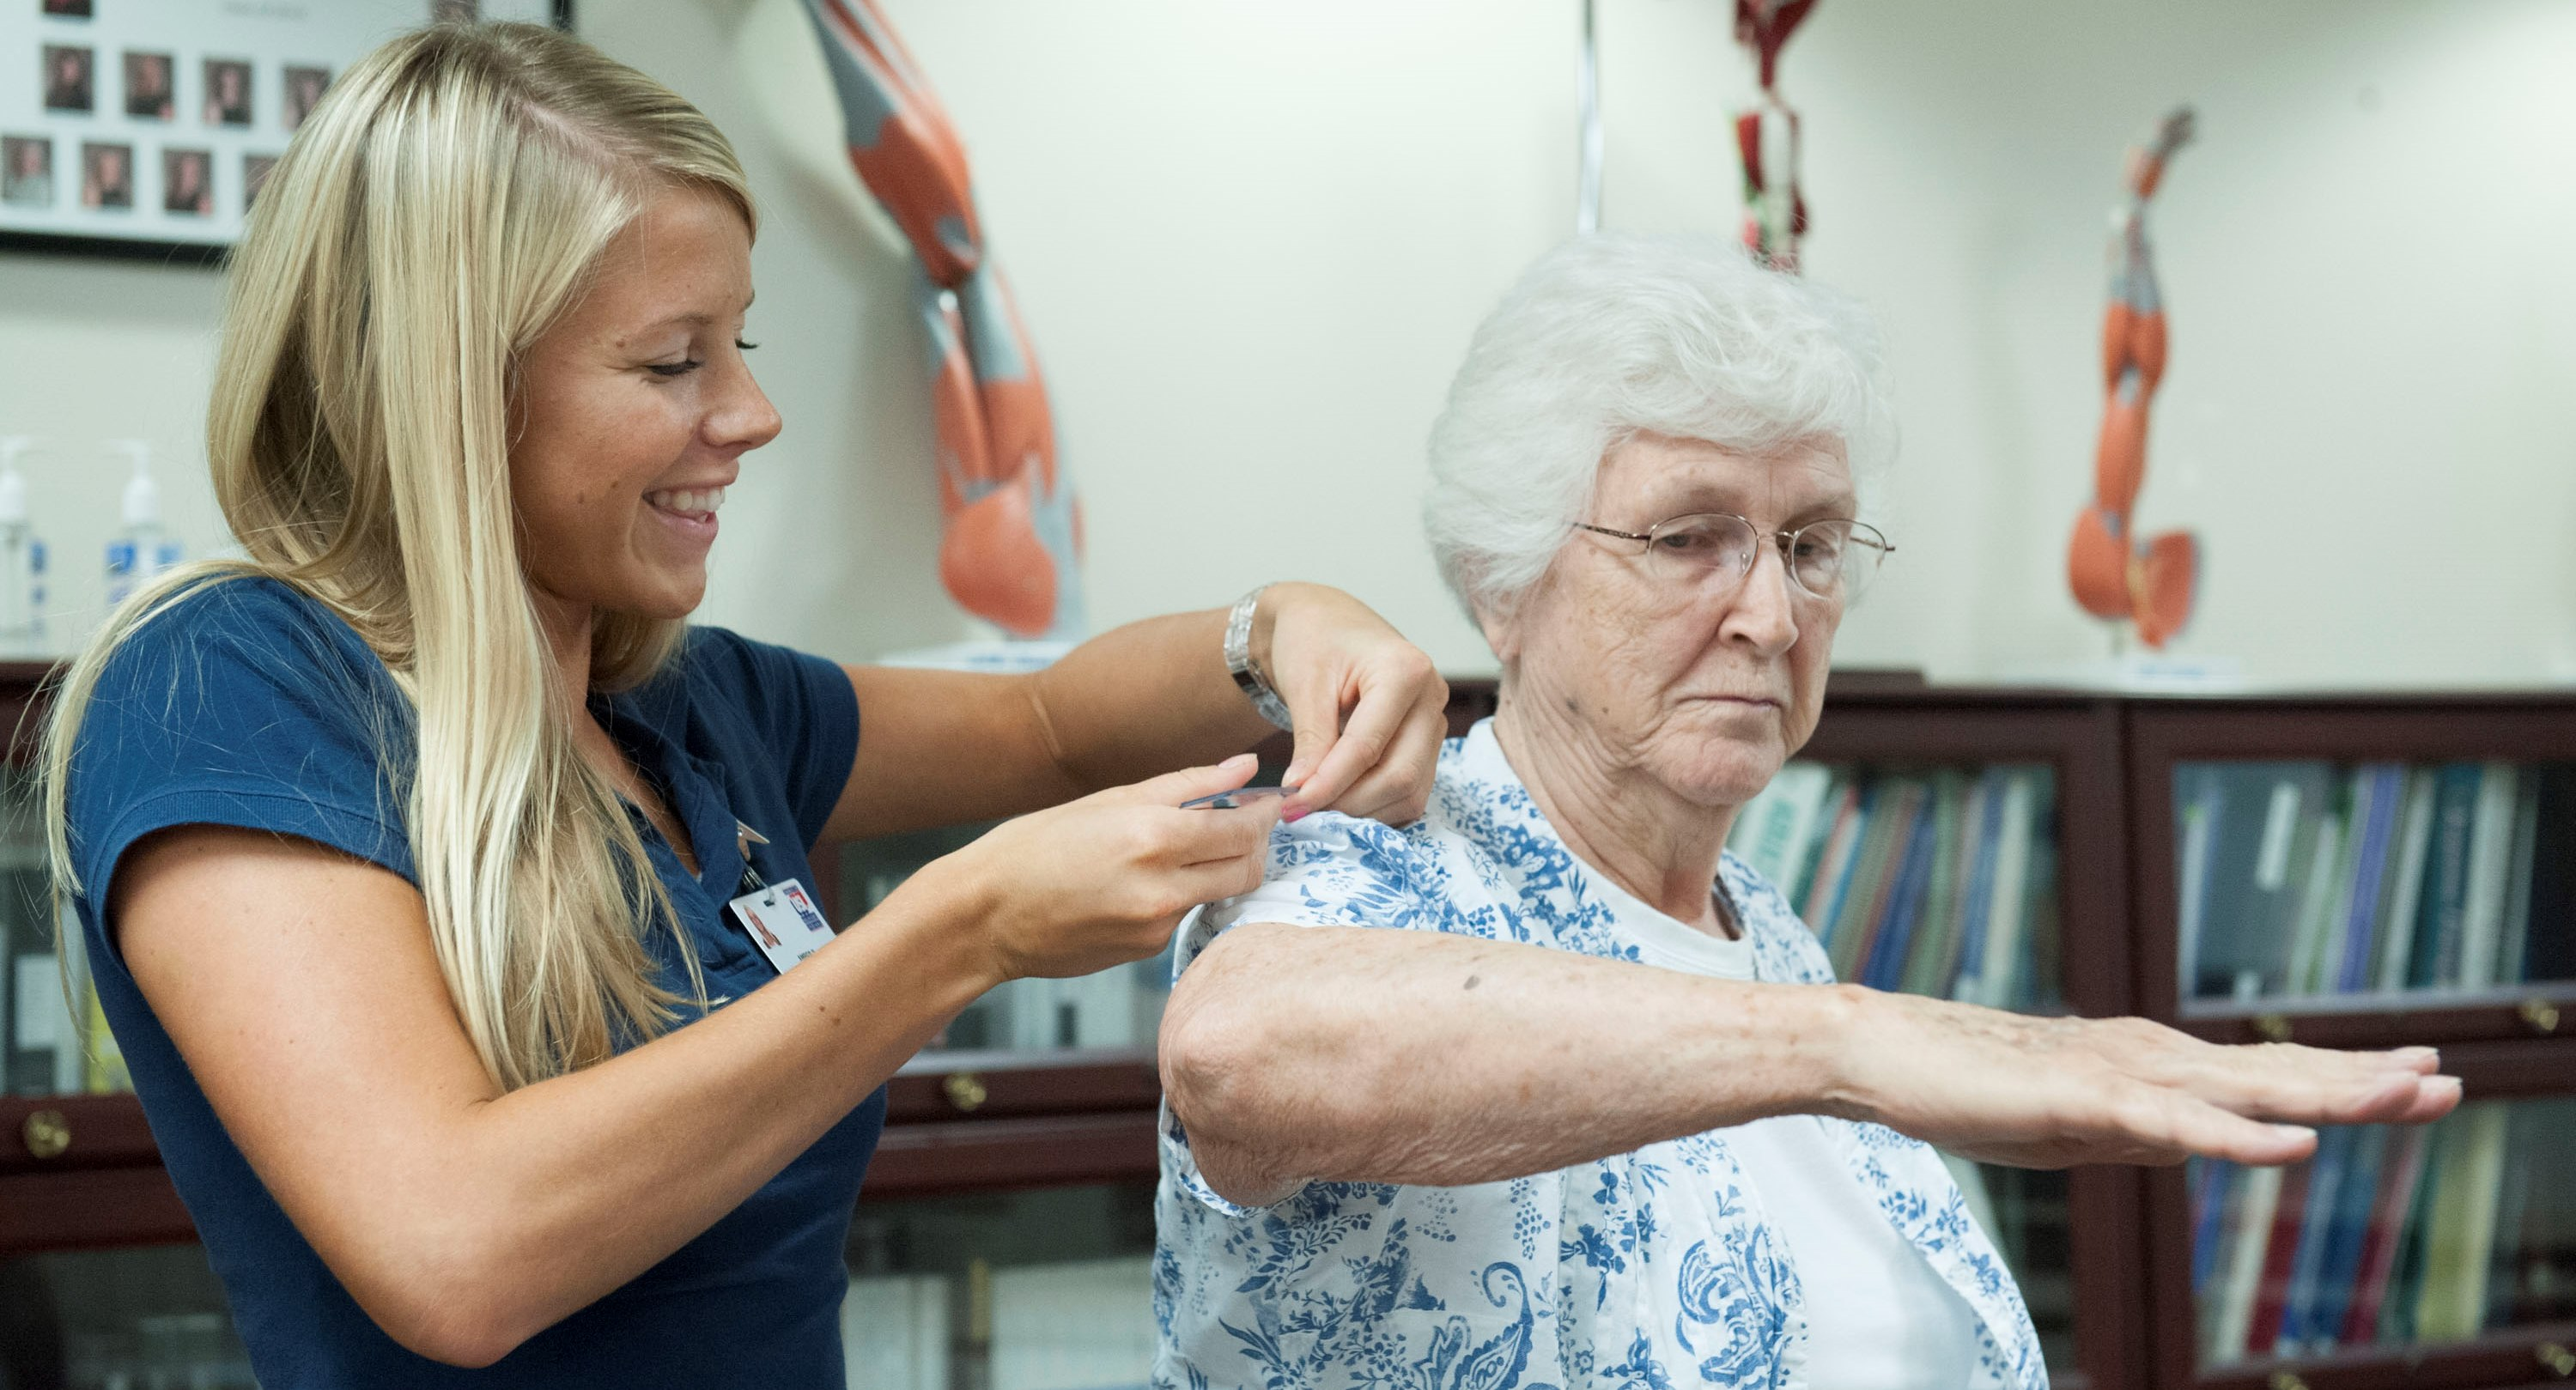 Occupational Therapy Assistant Program At University Of Southern Indiana